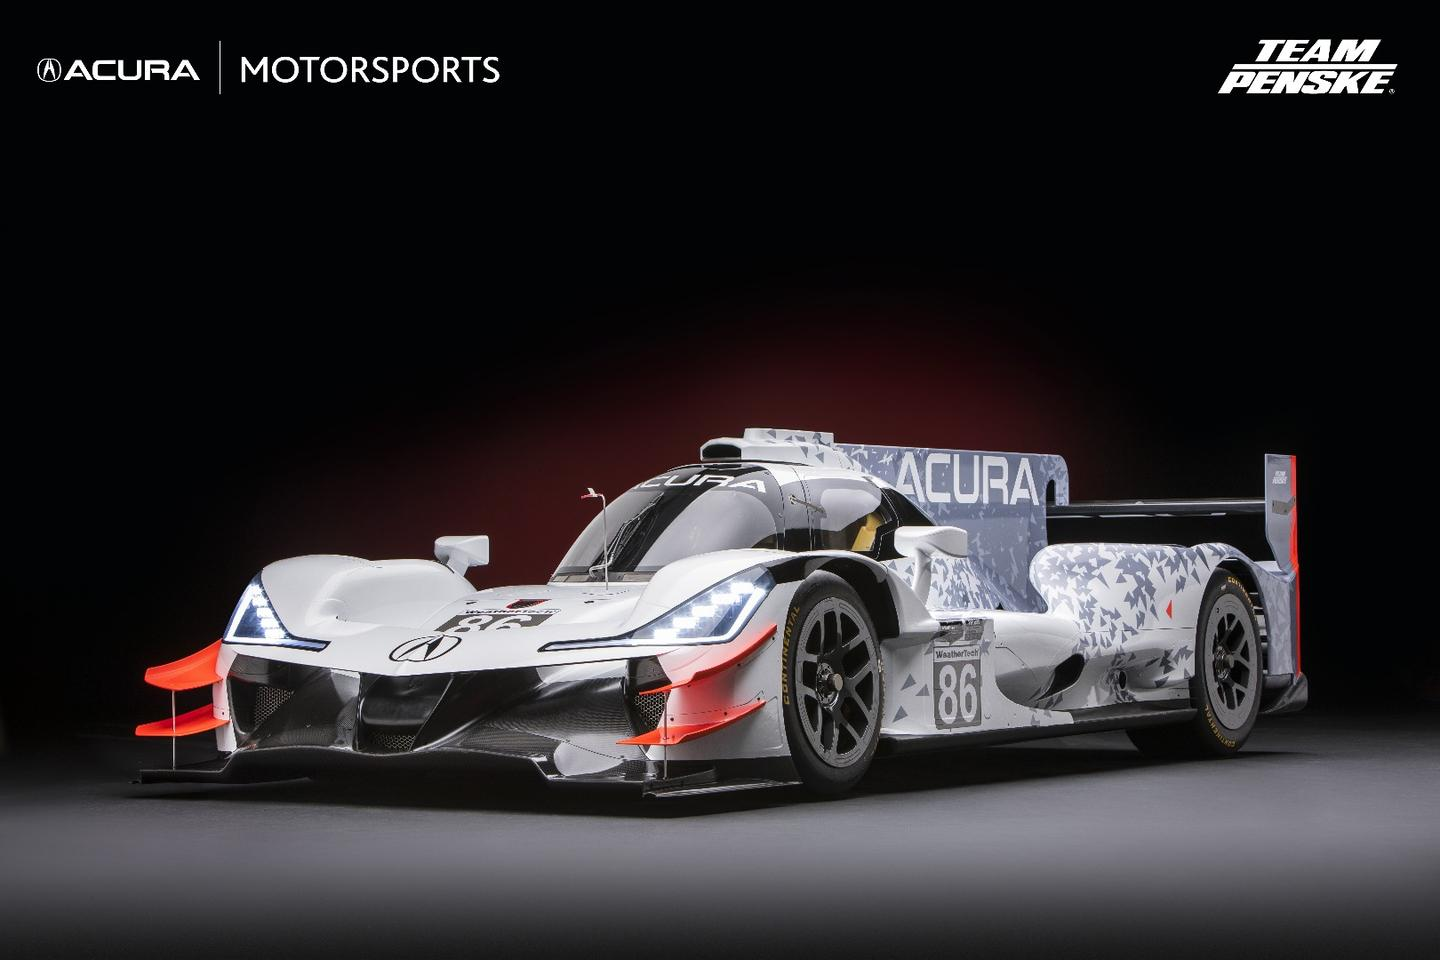 The beak of theAcura ARX-05 is one of the biggest differences between it and the ORECAcar it's based on